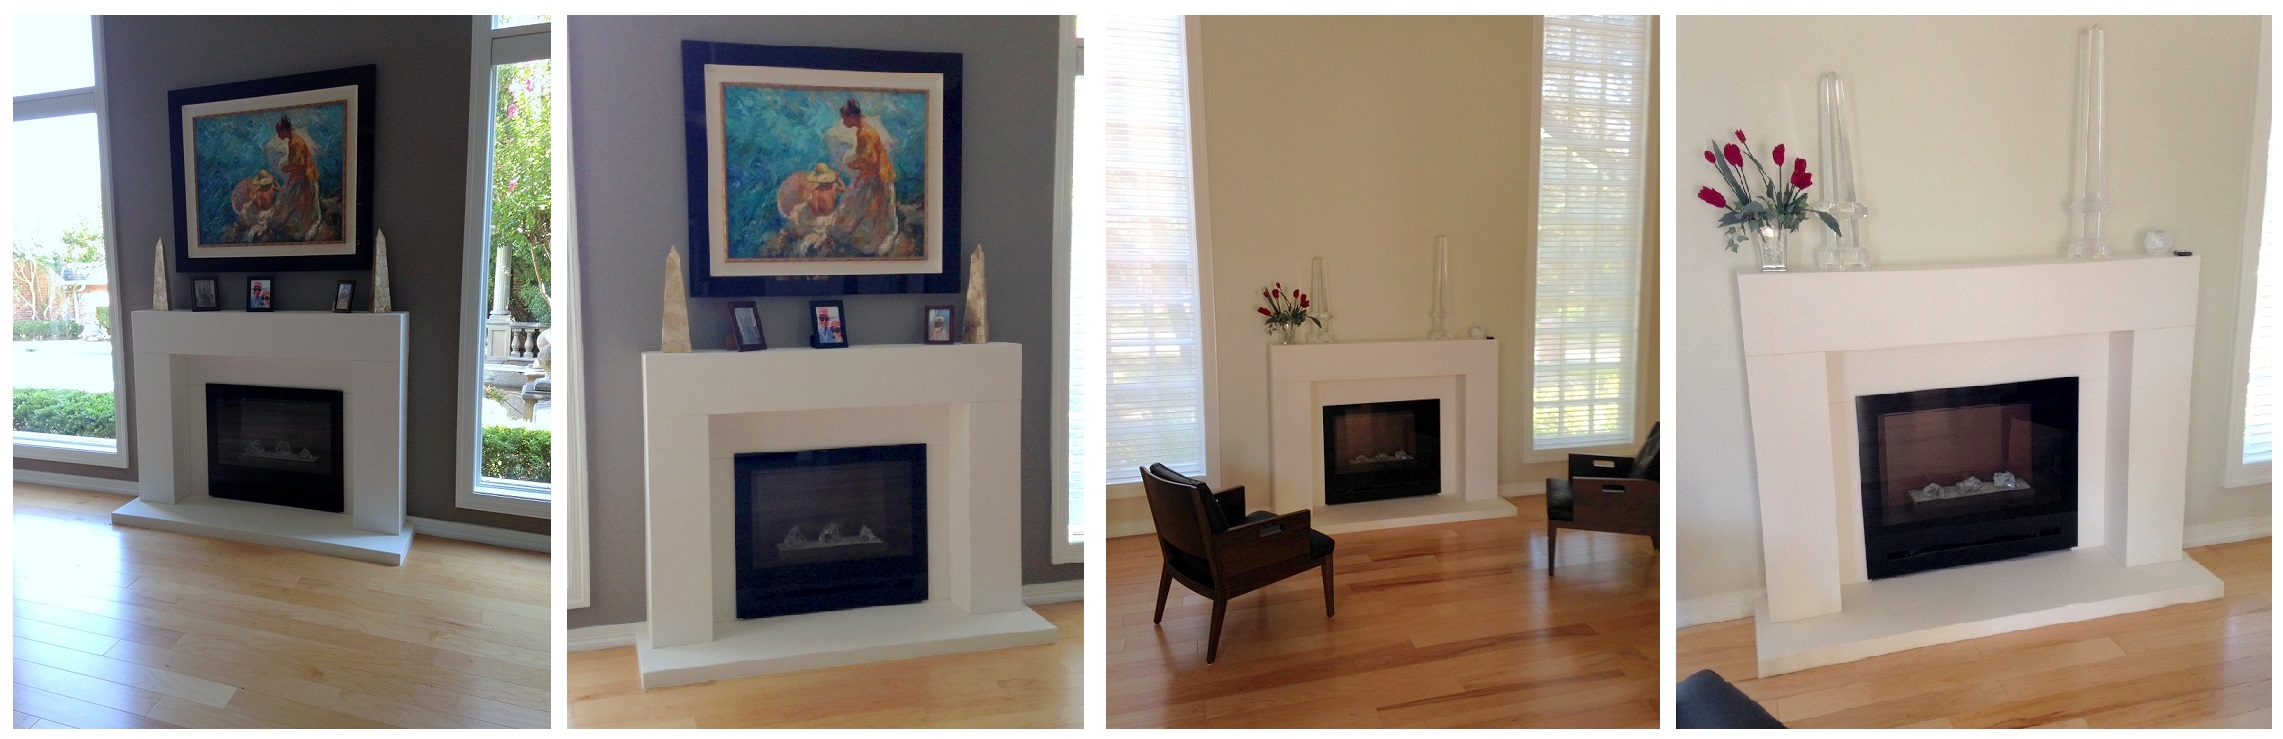 Marble Mantel with Electric Fireplace